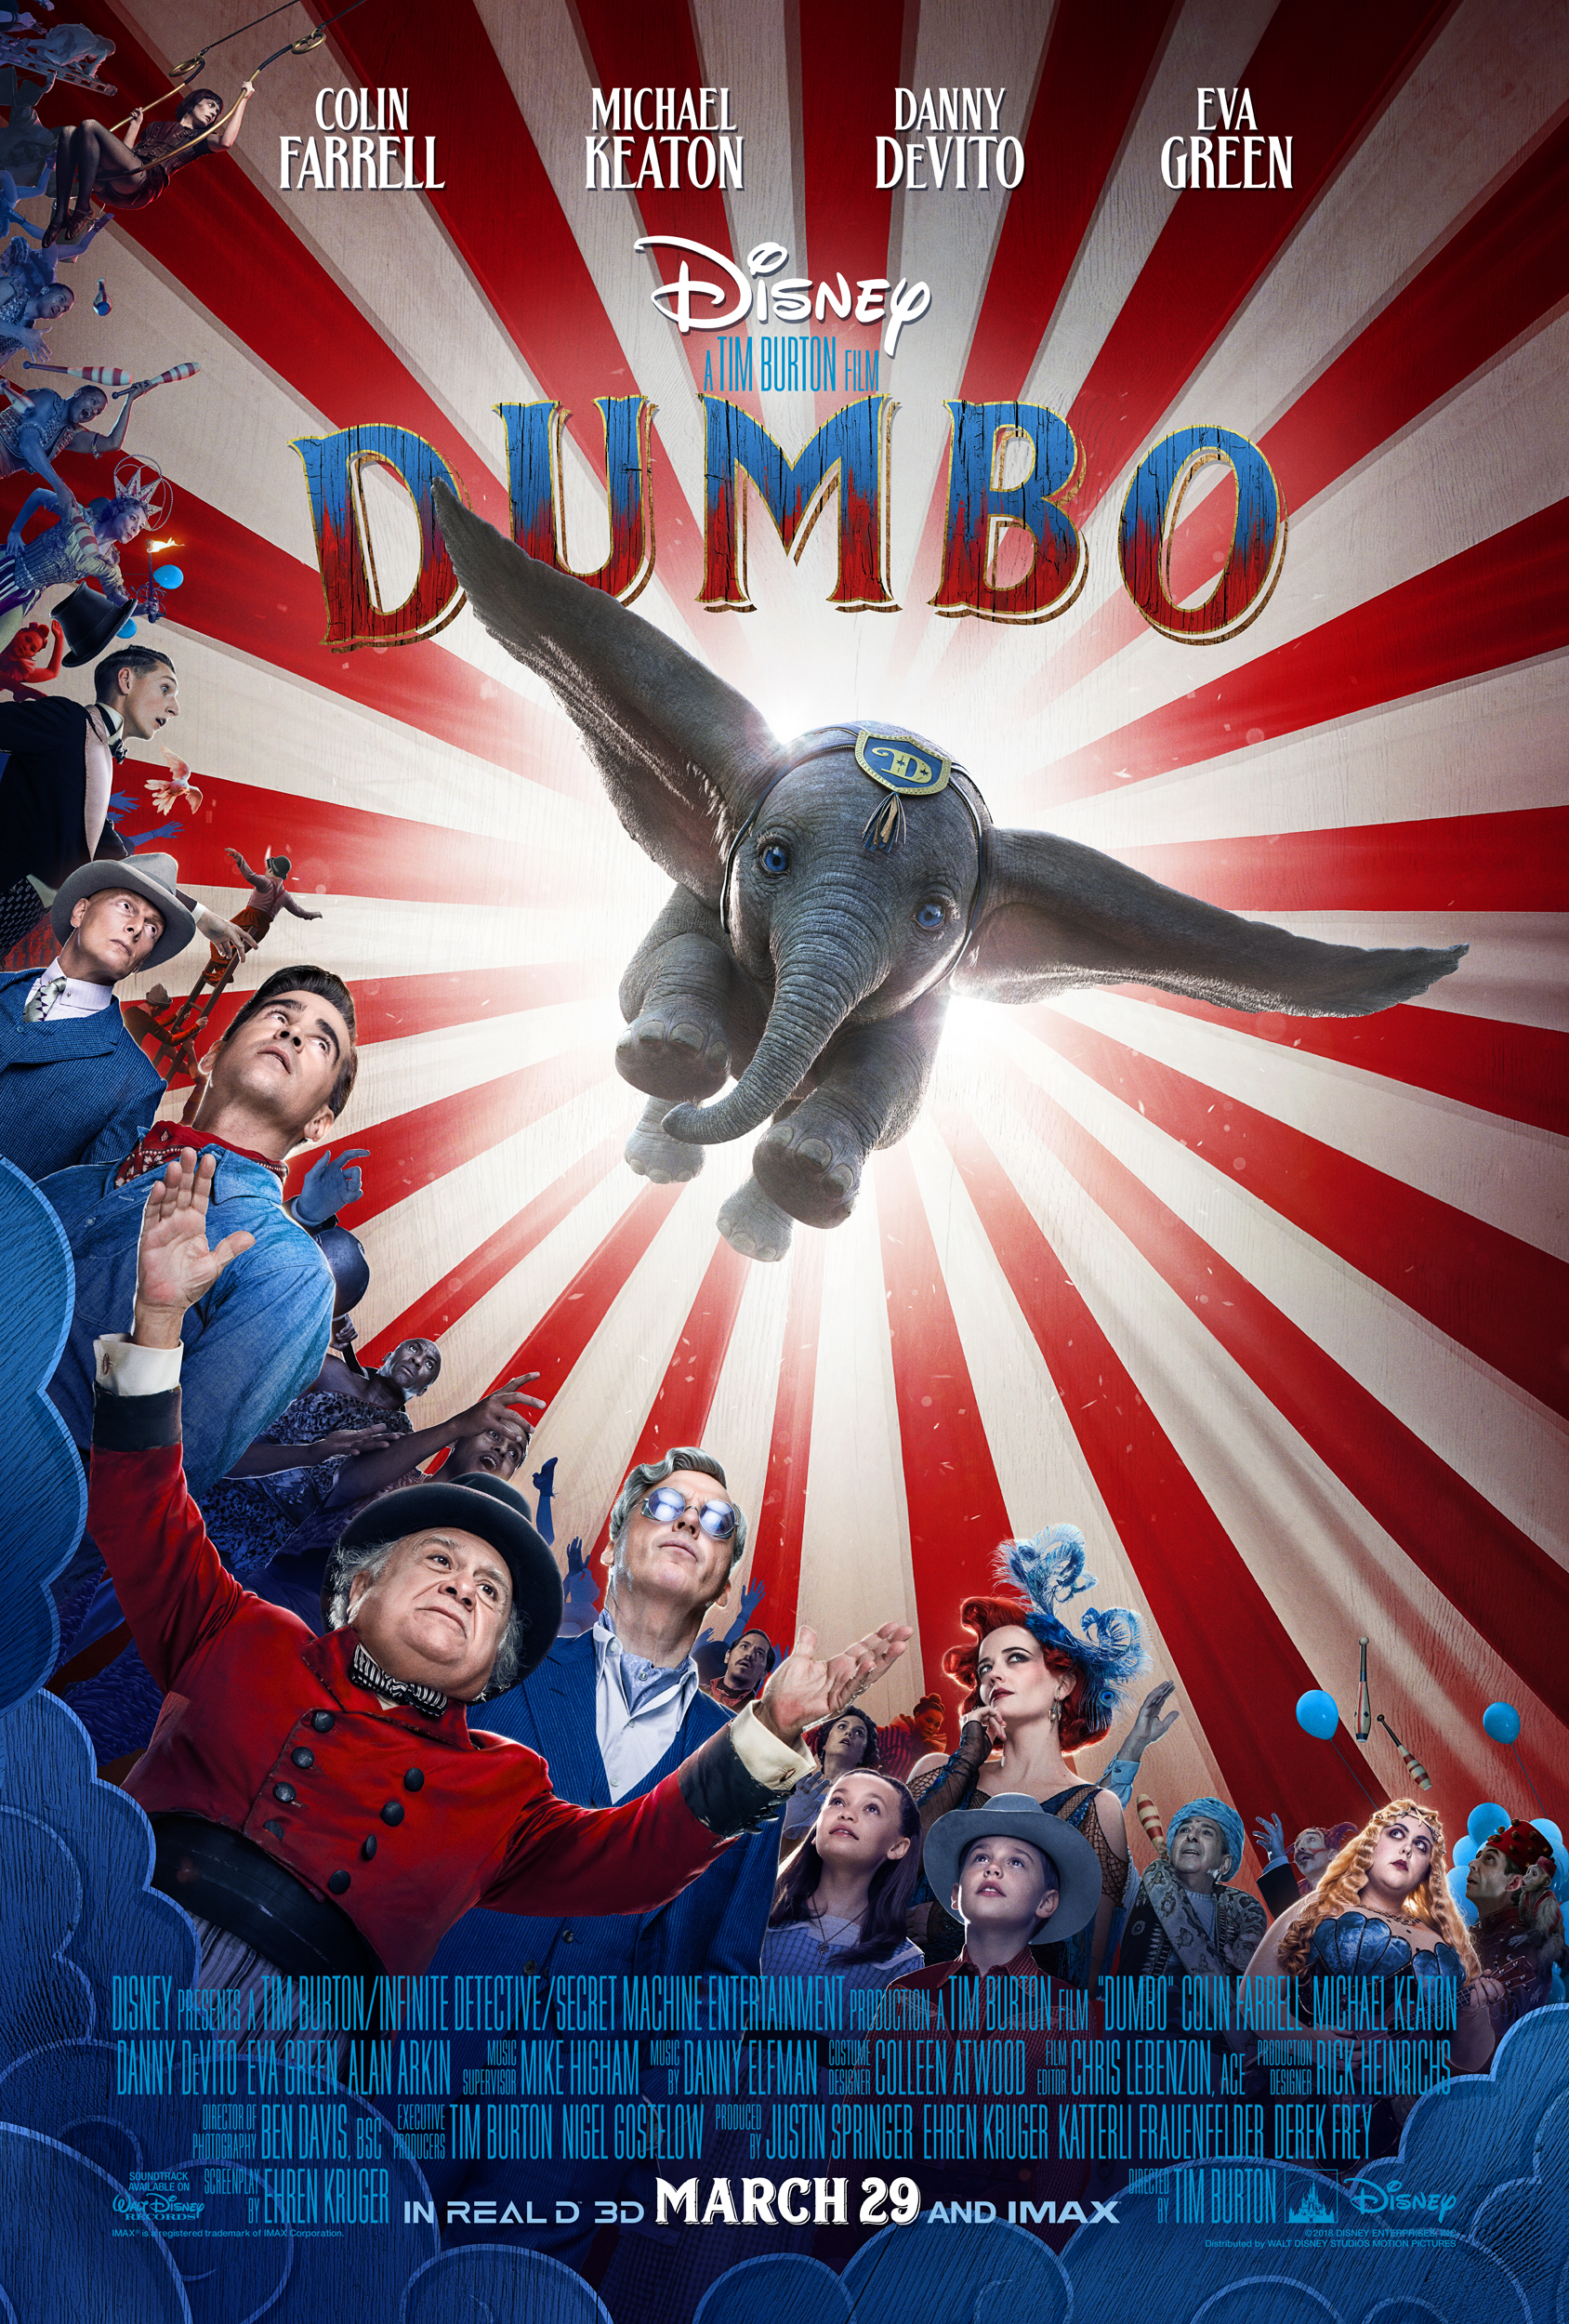 A live-action Dumbo film is on the list of Disney movies coming out in 2019!